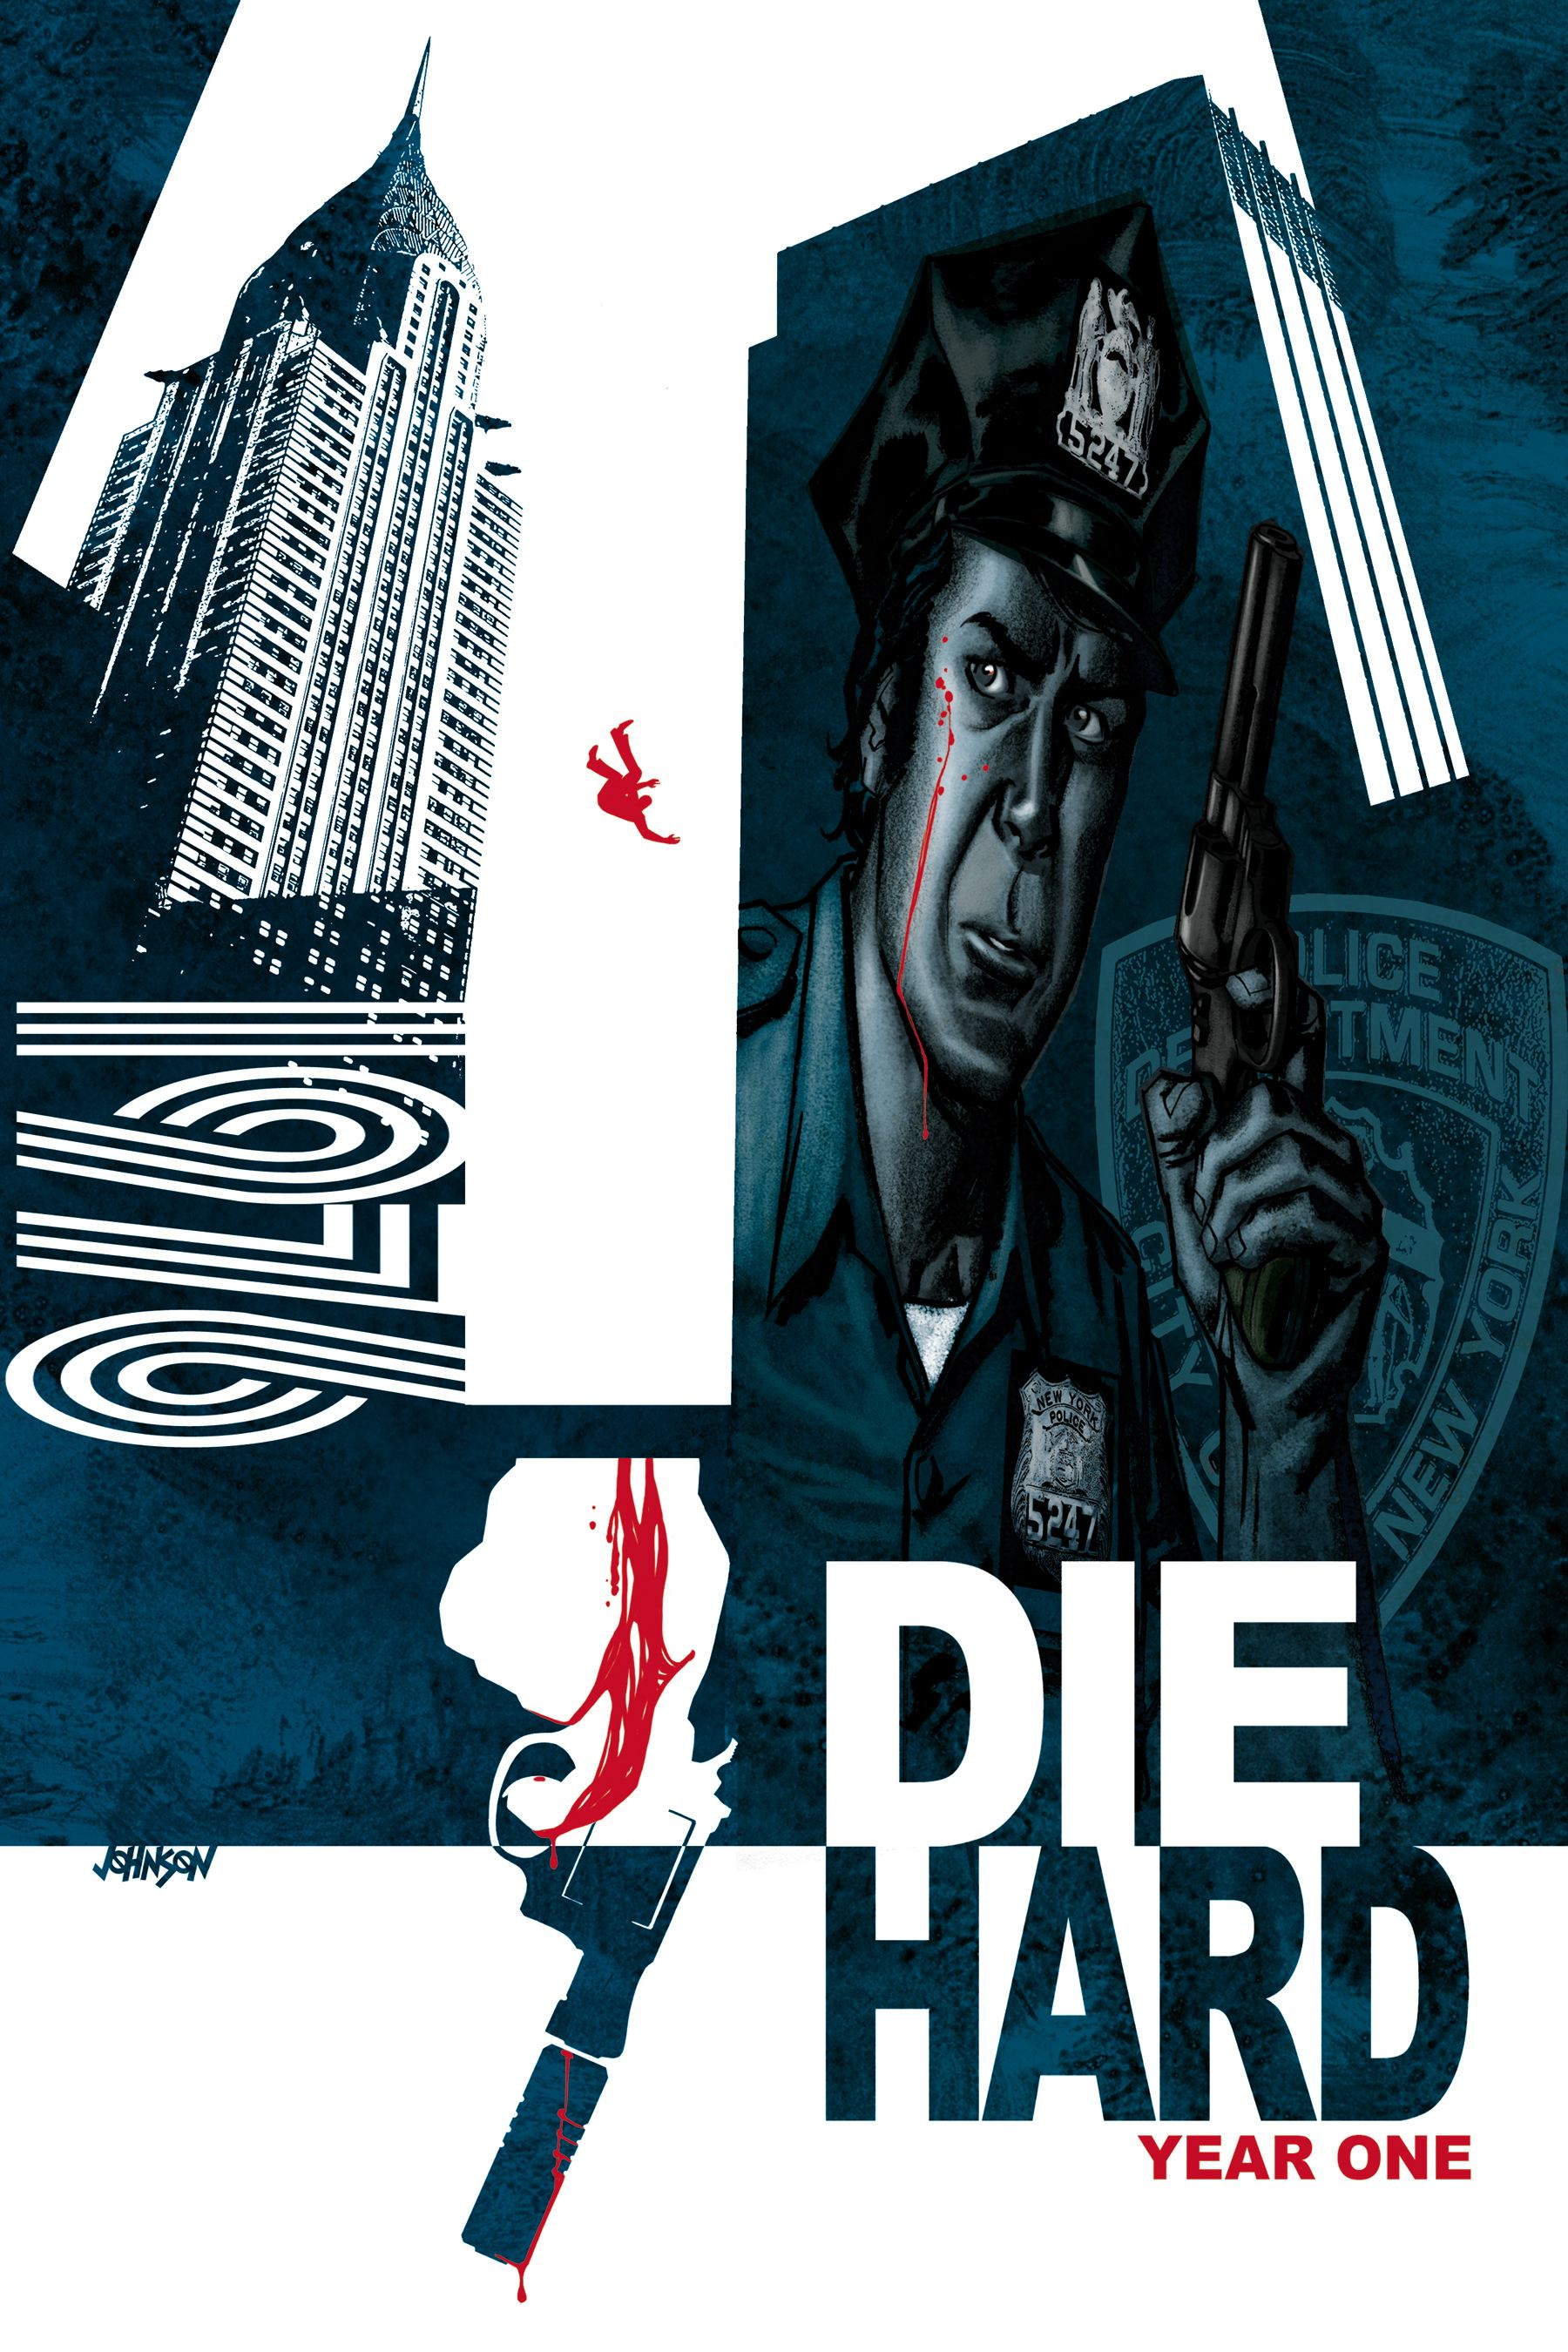 Die hard year one vol 1 9781608866236 hr